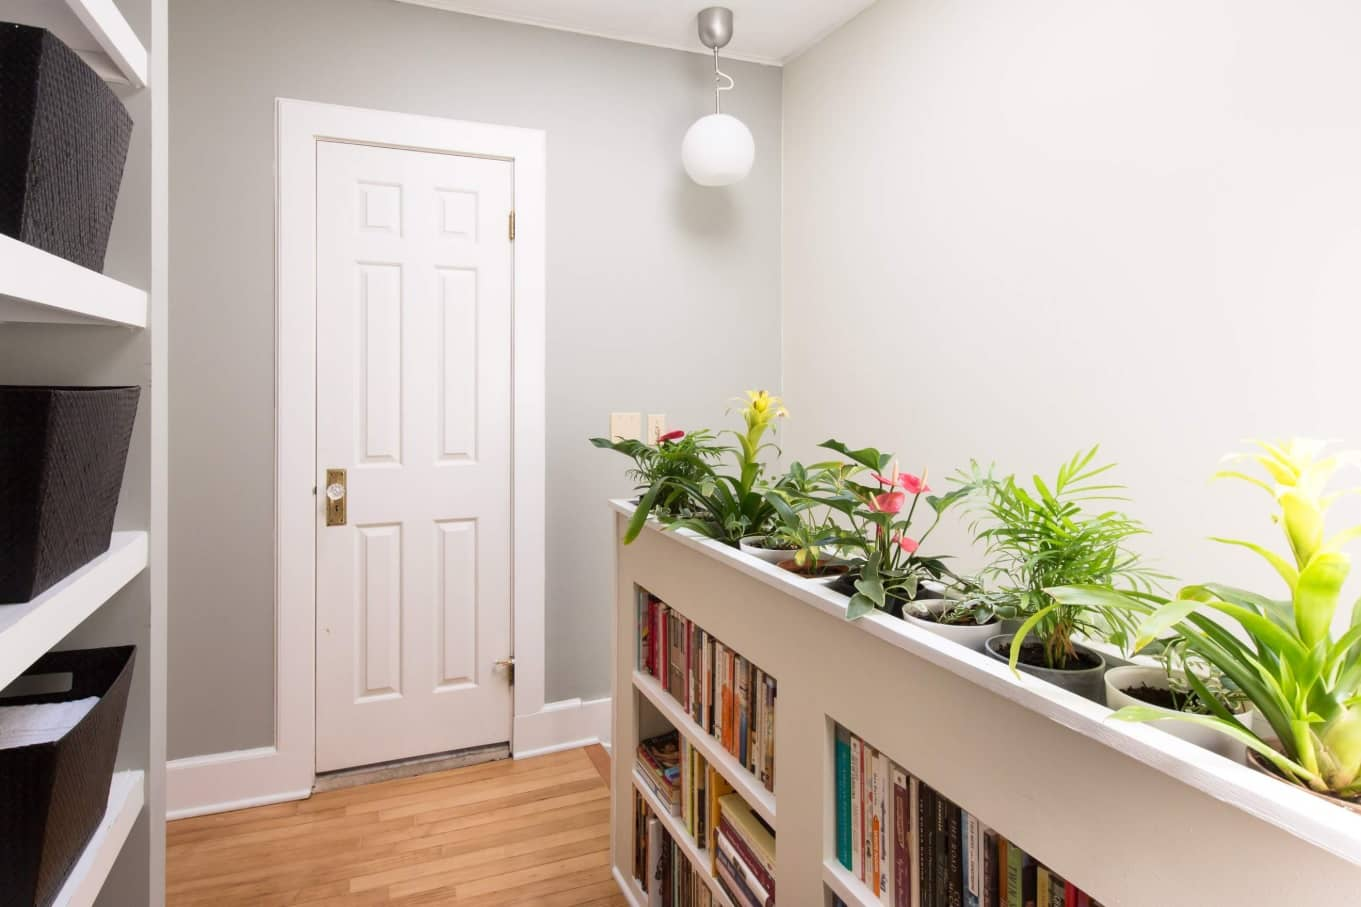 Storage Inspiration for Smaller Homes. The hallway with bookshelf with the pots for flowers at the top